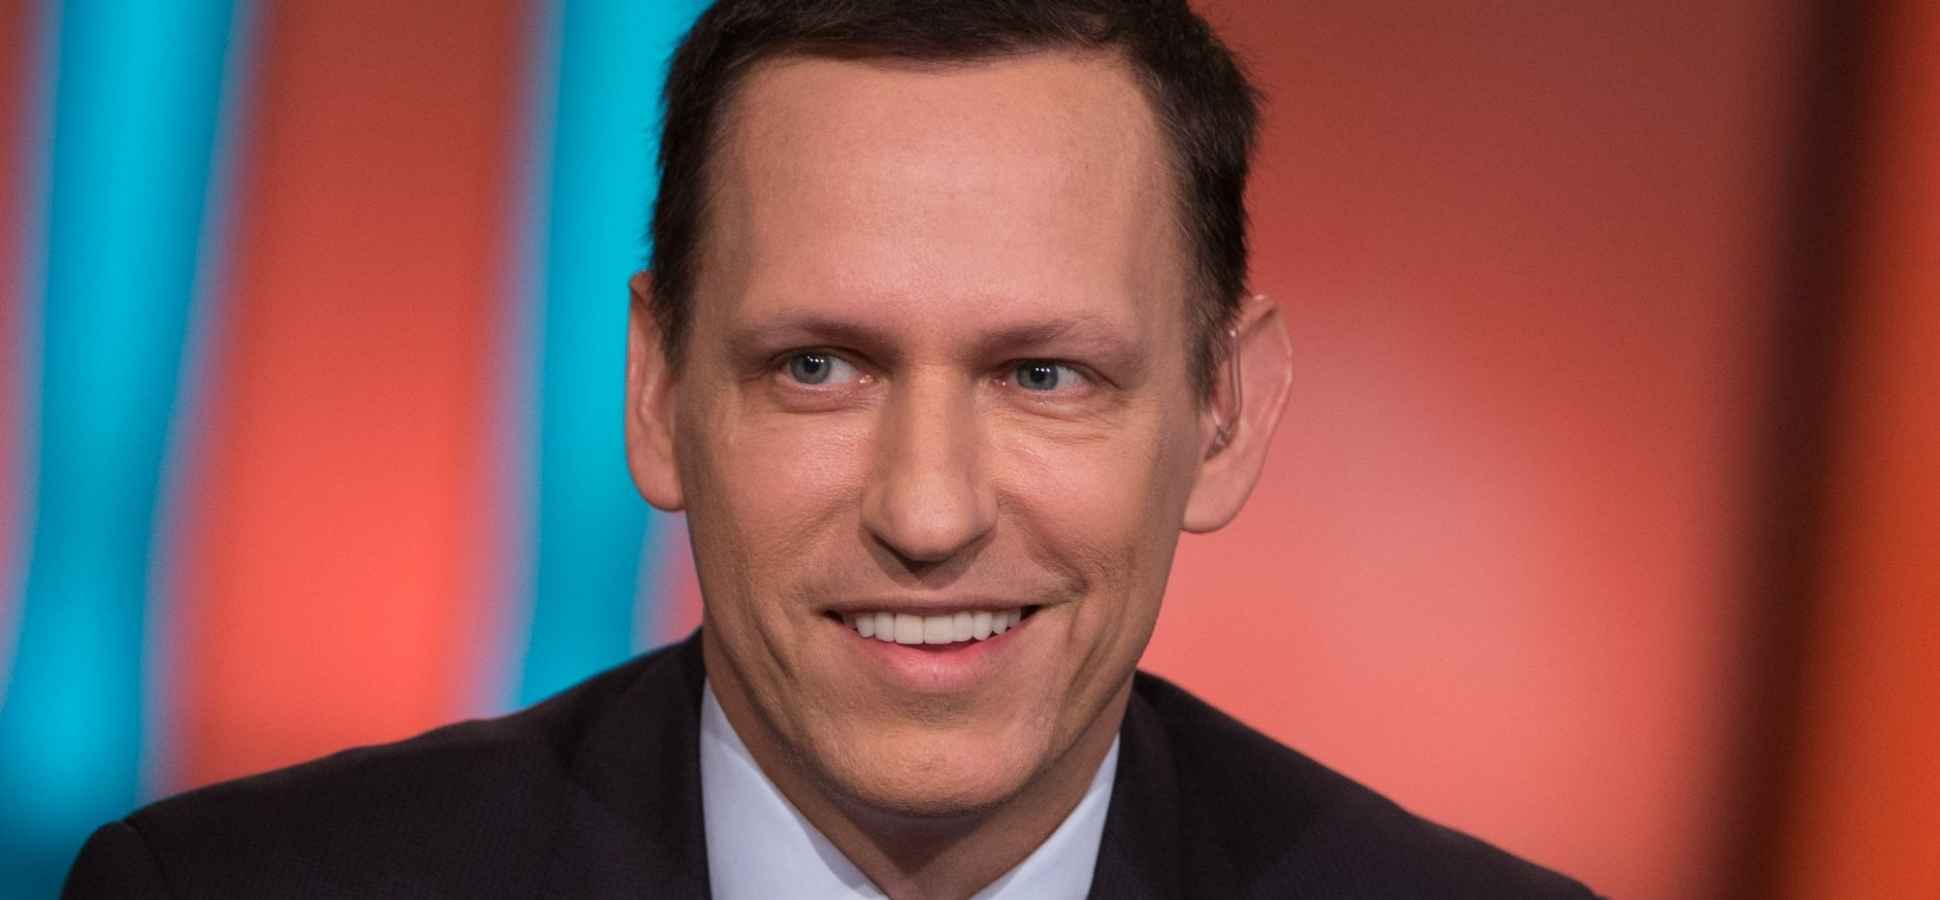 Why Peter Thiel Could Walk Away From Palantir With Billions | Inc com